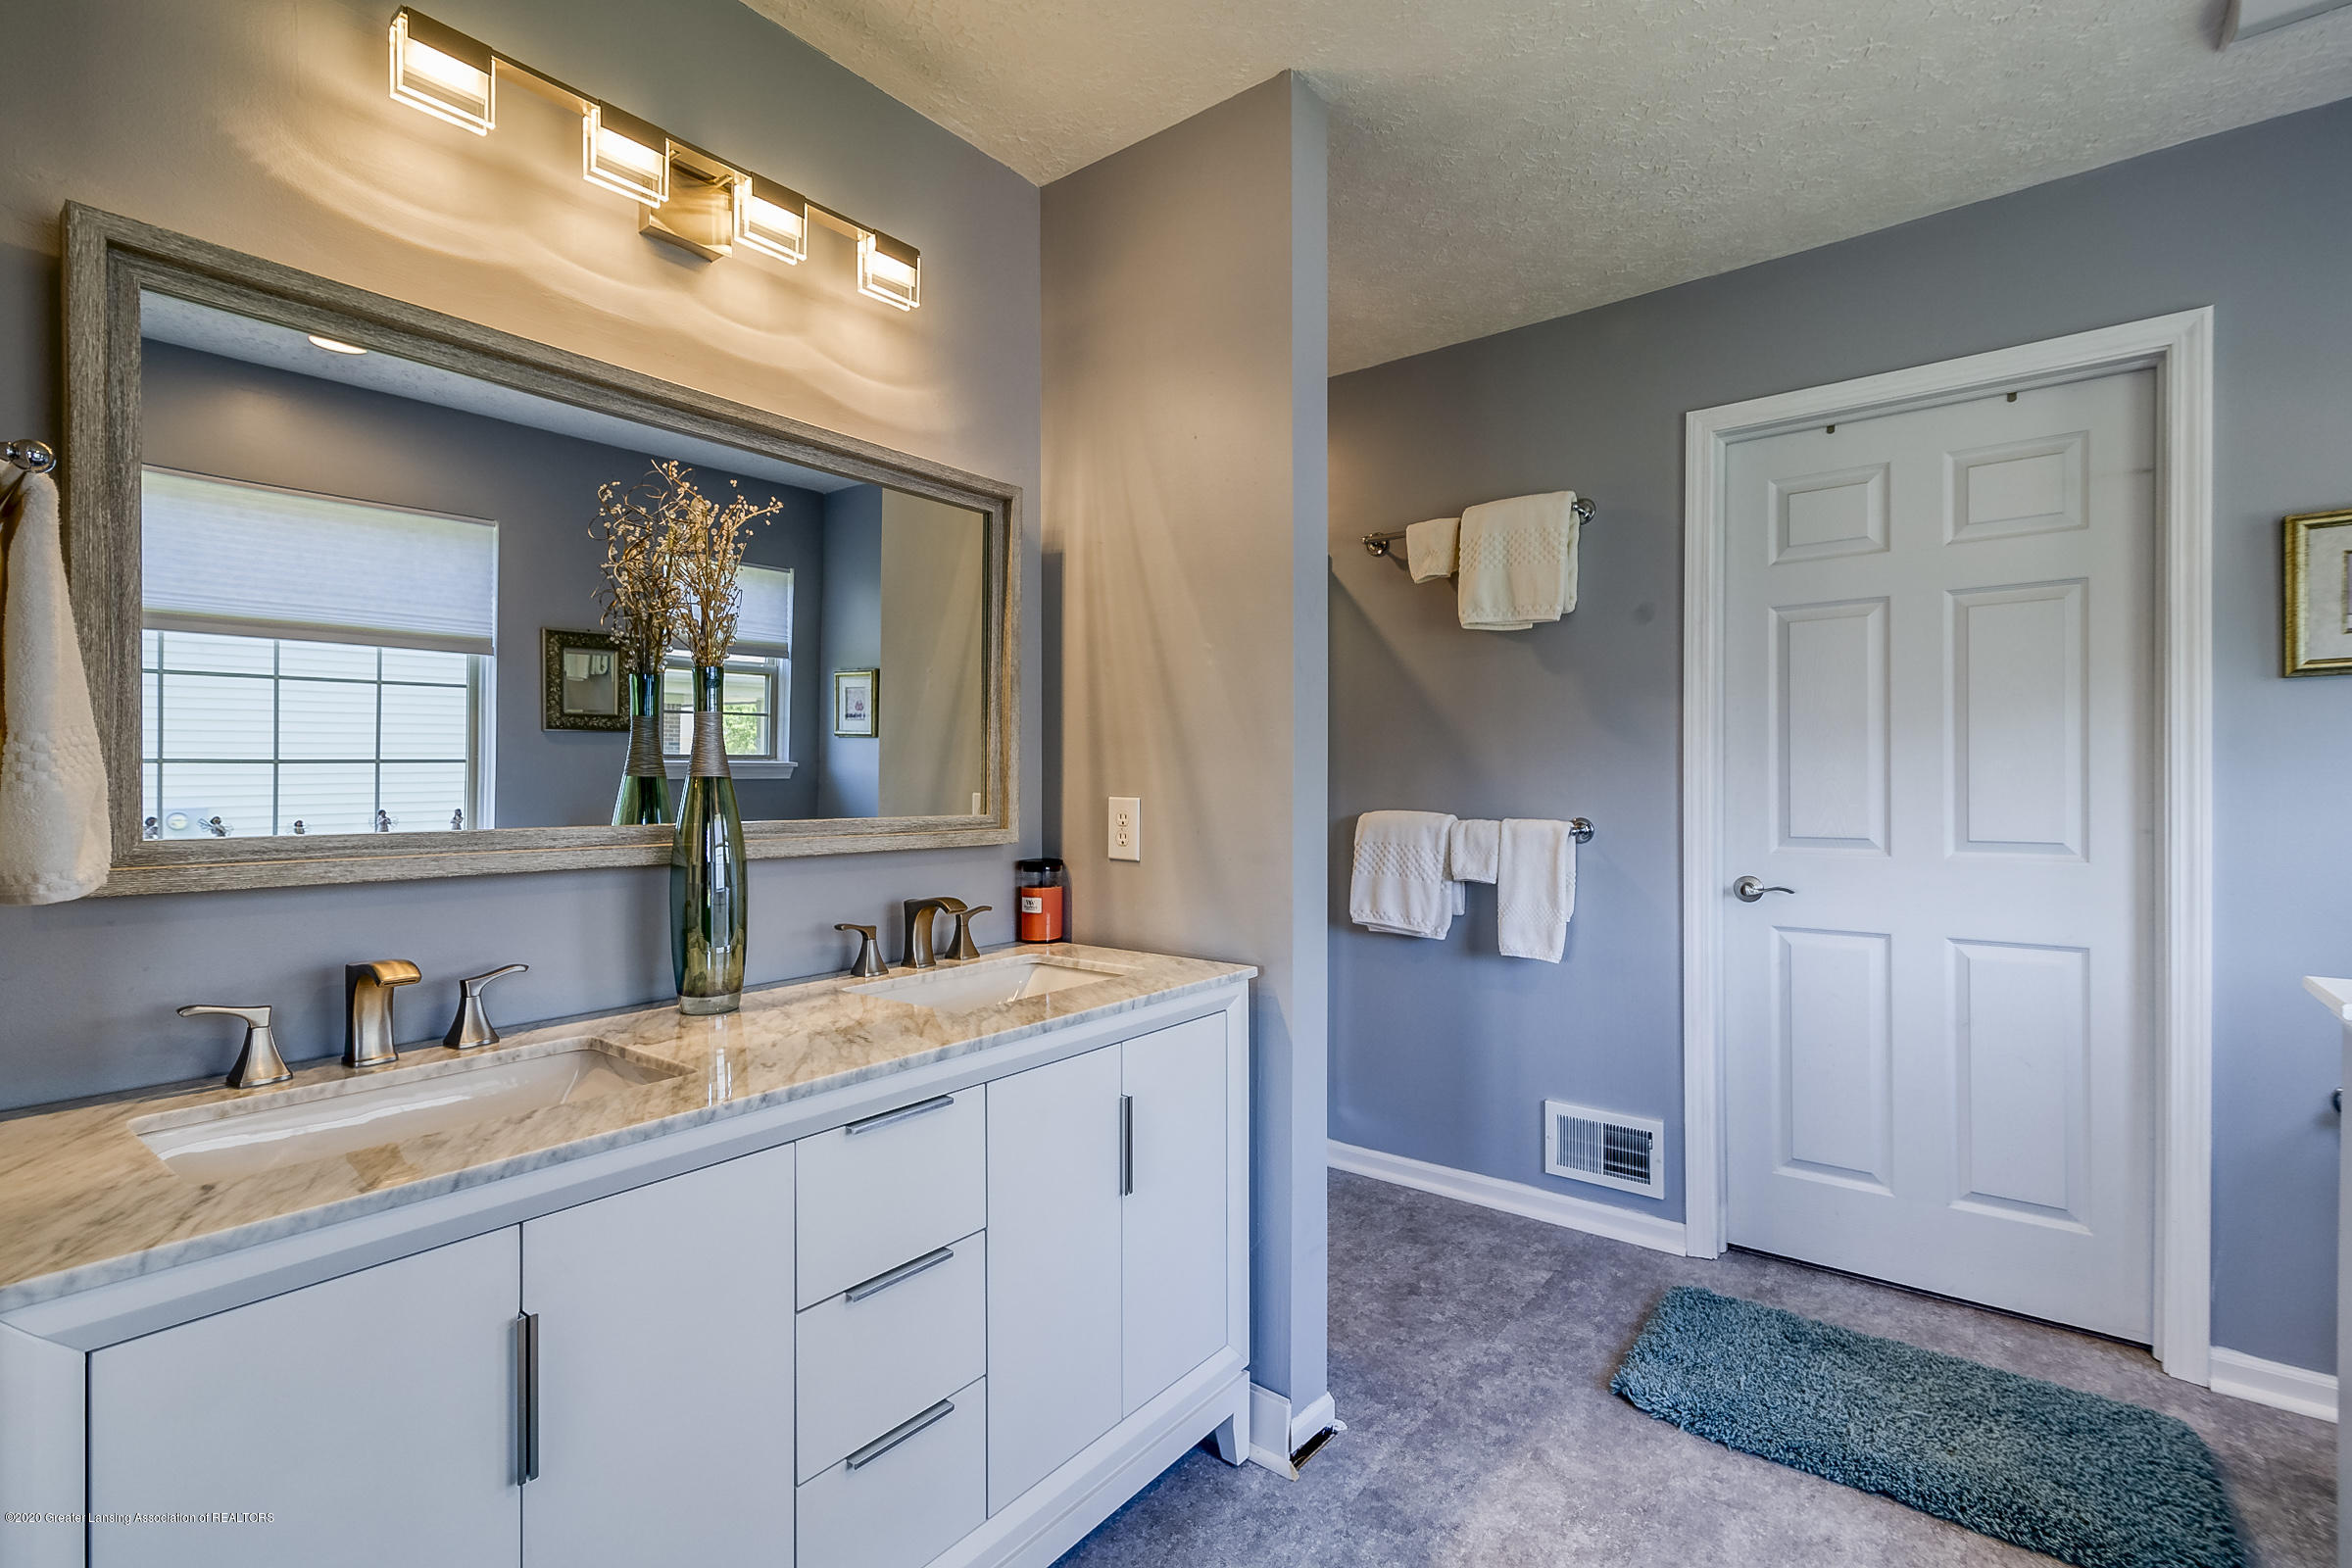 4092 Pheasant Run - MASTER BATHROOM - 22